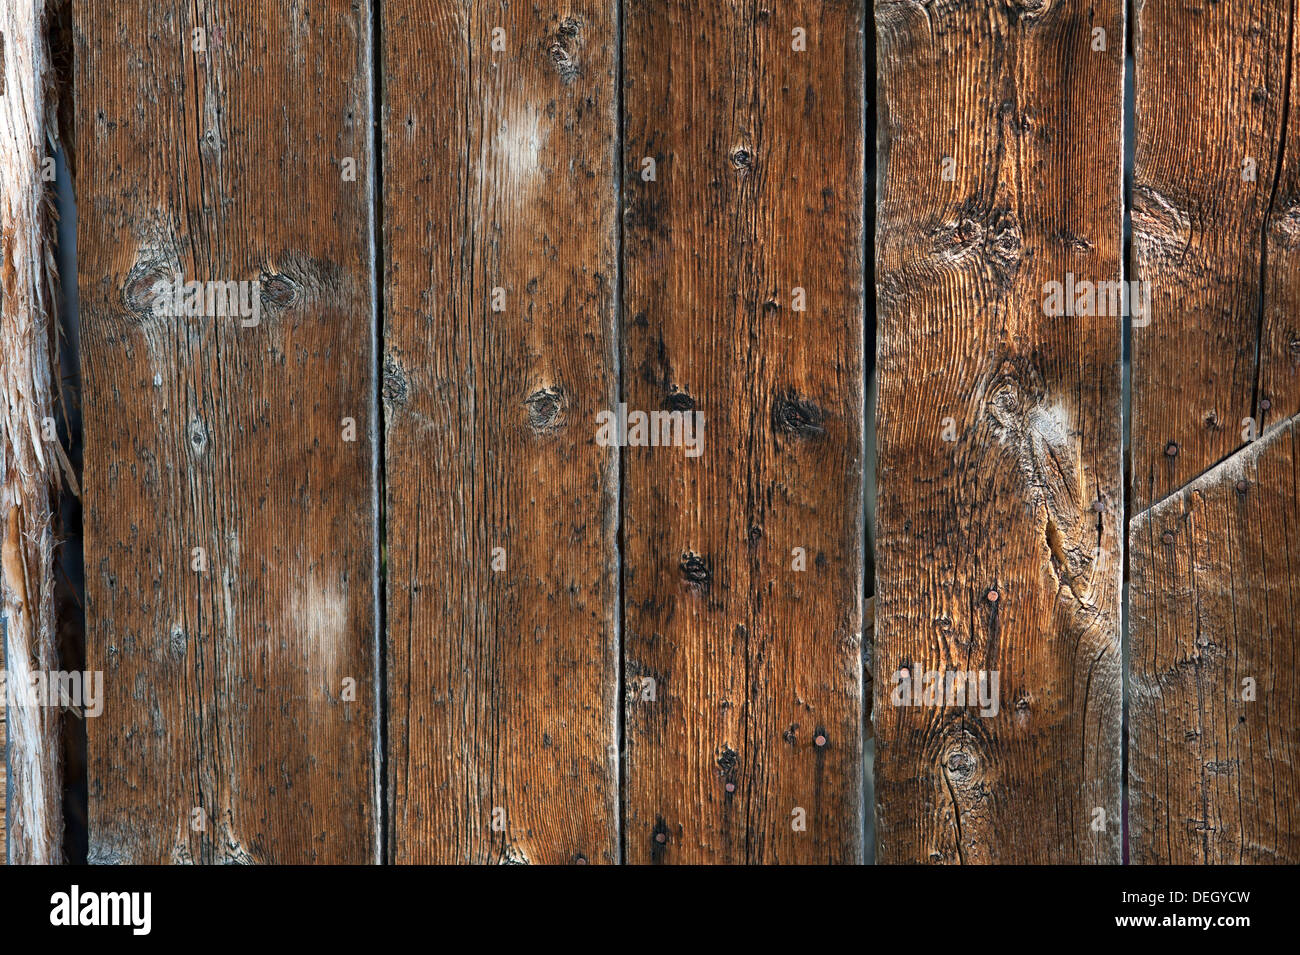 Old Barn Wood Planks - Stock Image